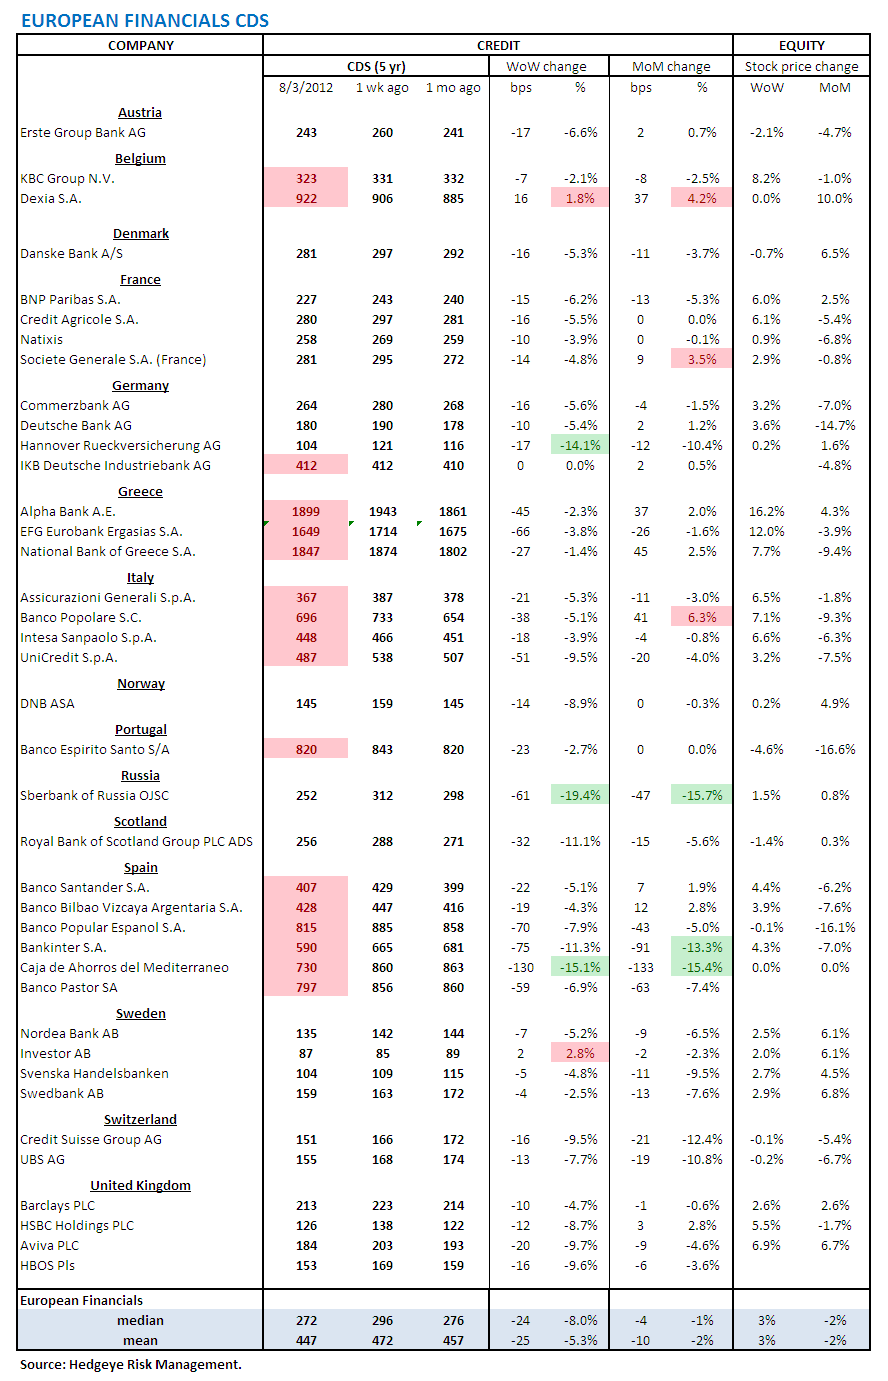 MONDAY MORNING RISK MONITOR: RISK TAKES A HOLIDAY, FOR NOW - European Financials